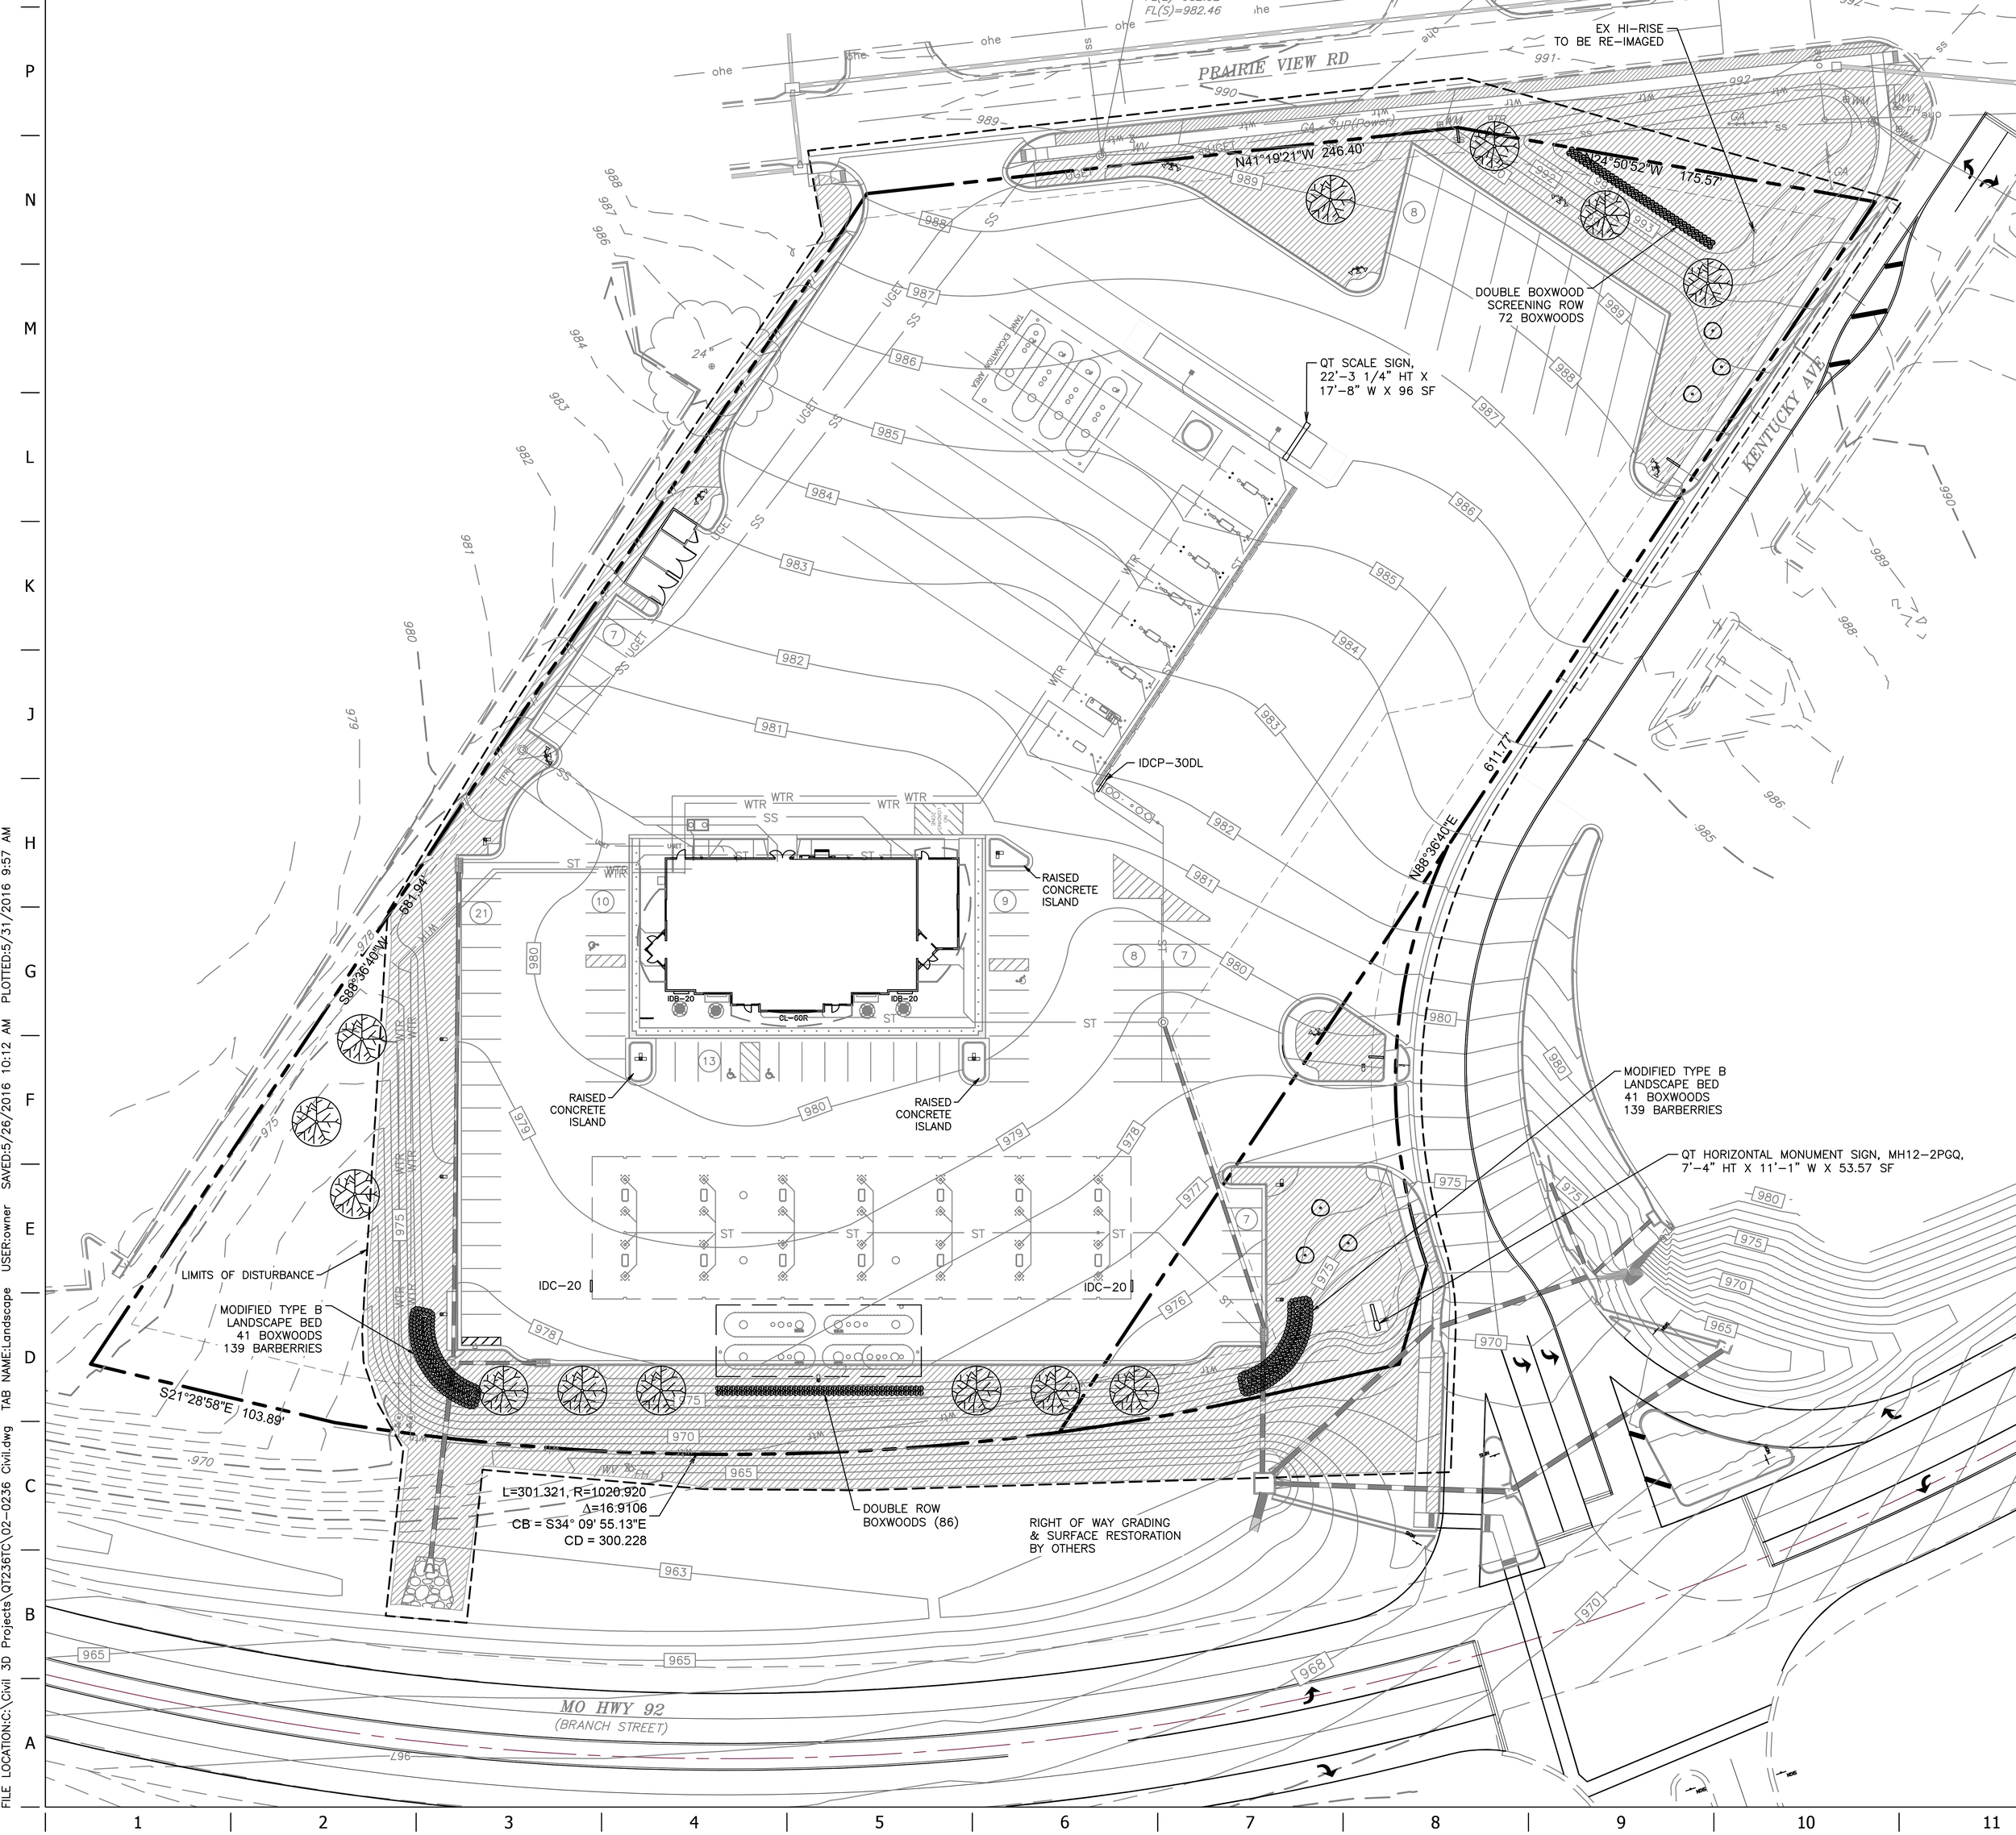 Contributed graphic This site plan for QuikTrip's new Generation 3 store in Platte City shows the building's new orientation. The front of the store will face Highway 92 (pictured at the bottom), while the truck parking, scales and pumps will be shifted to the east end of the lot along Prairie View Road (pictured at the top). The extension plans for Kentucky Avenue are detailed on the right side. Click for a larger version.